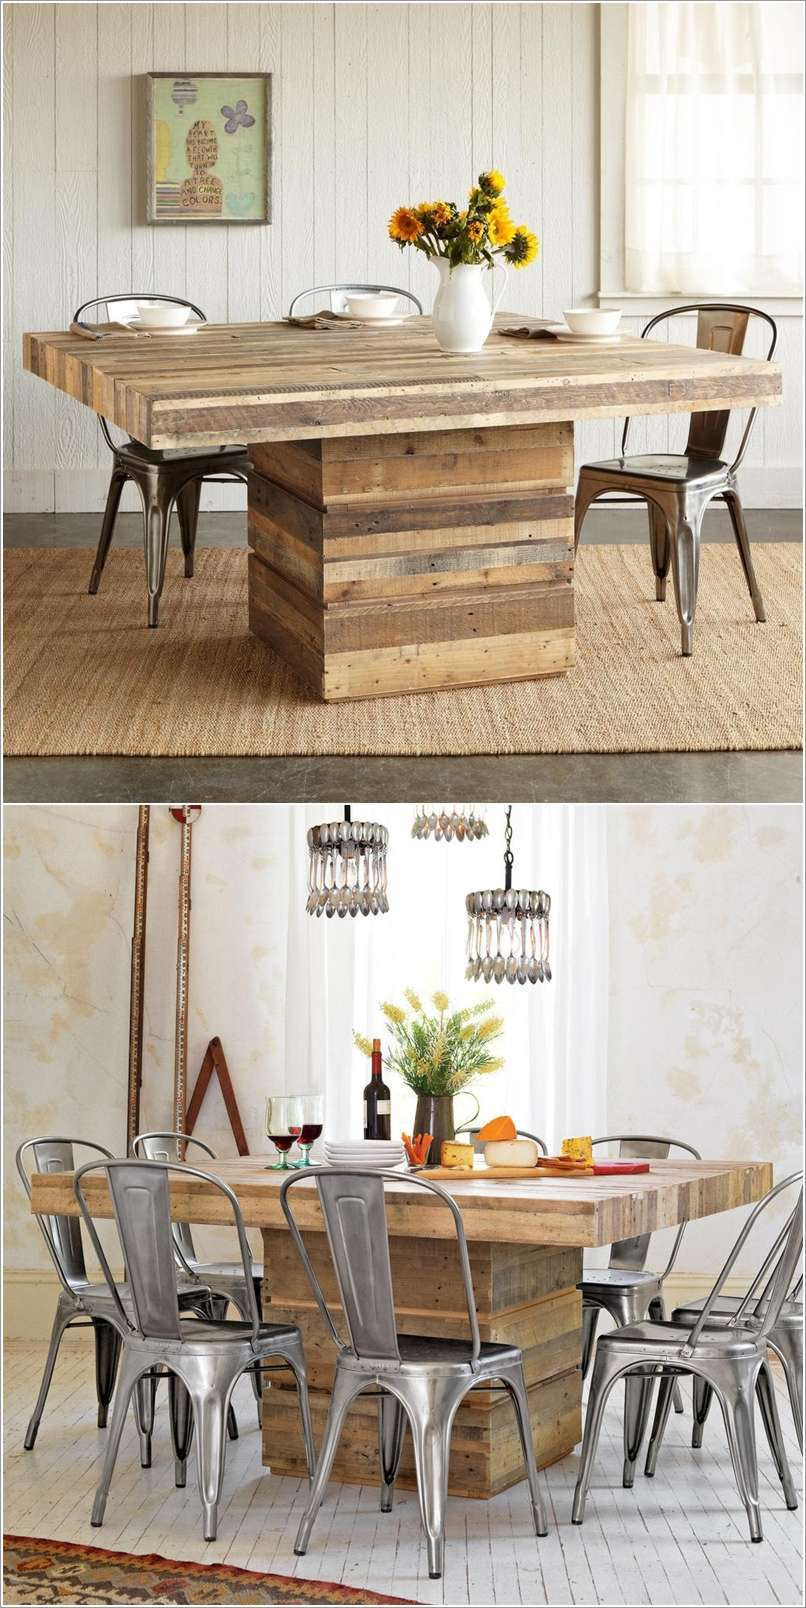 10 spectacular diy dining table ideas for your home - Table salle a manger palette ...